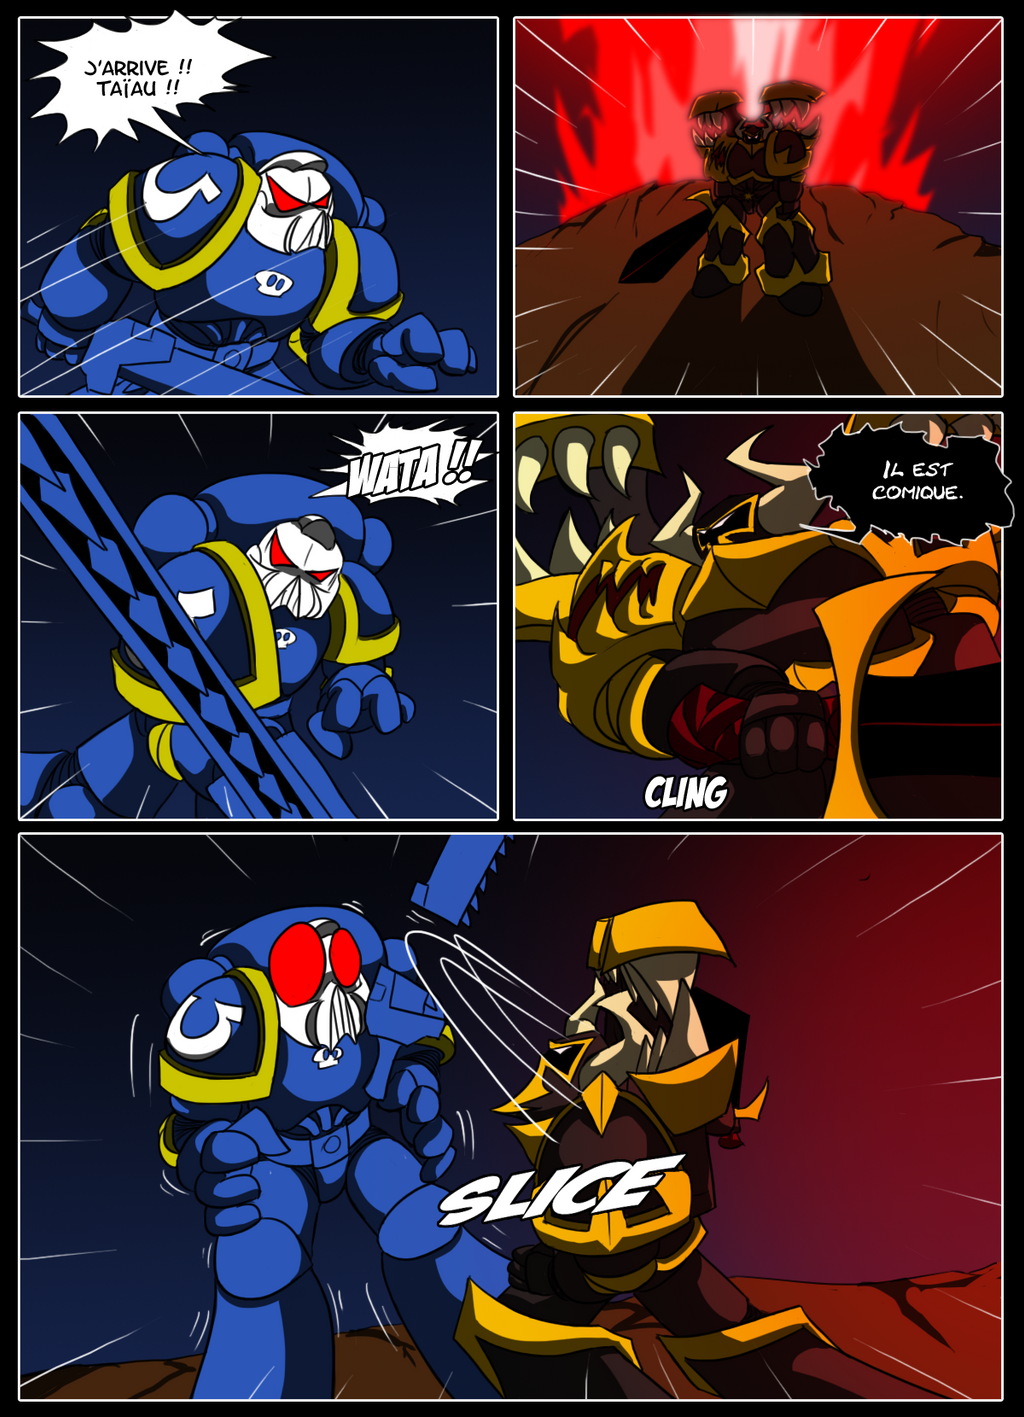 Bandes Dessinées de Warhammer 40,000 - Page 2 P40__color_by_littlecutter-d5tv6o4